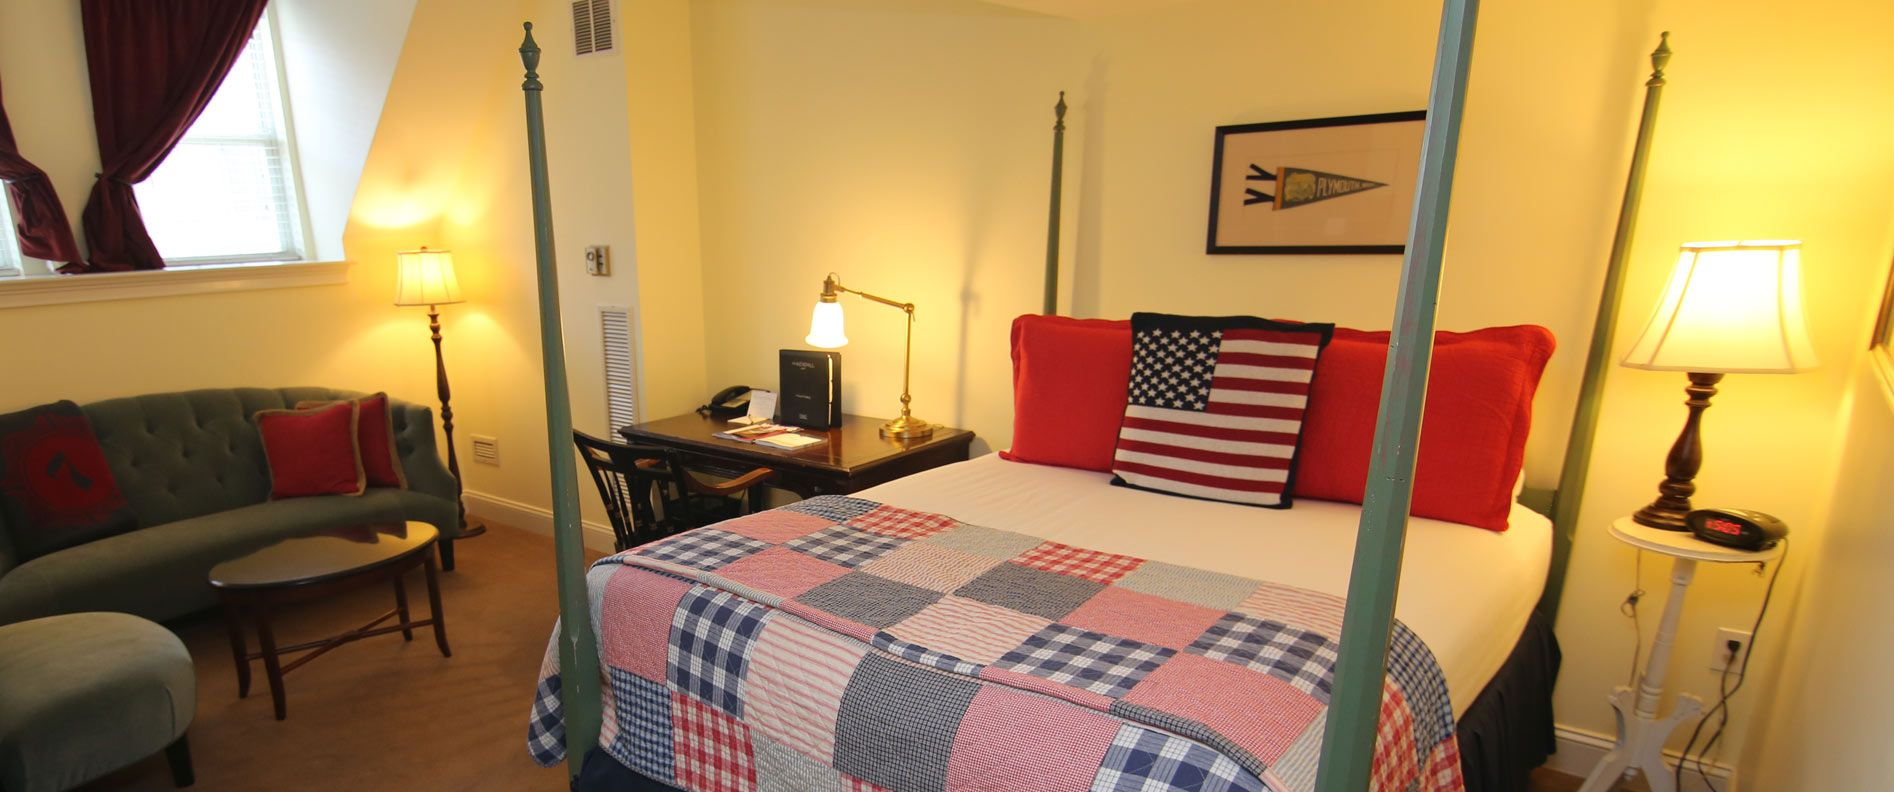 The Kendall Hotel Cambridge Ma Hotels Boutique